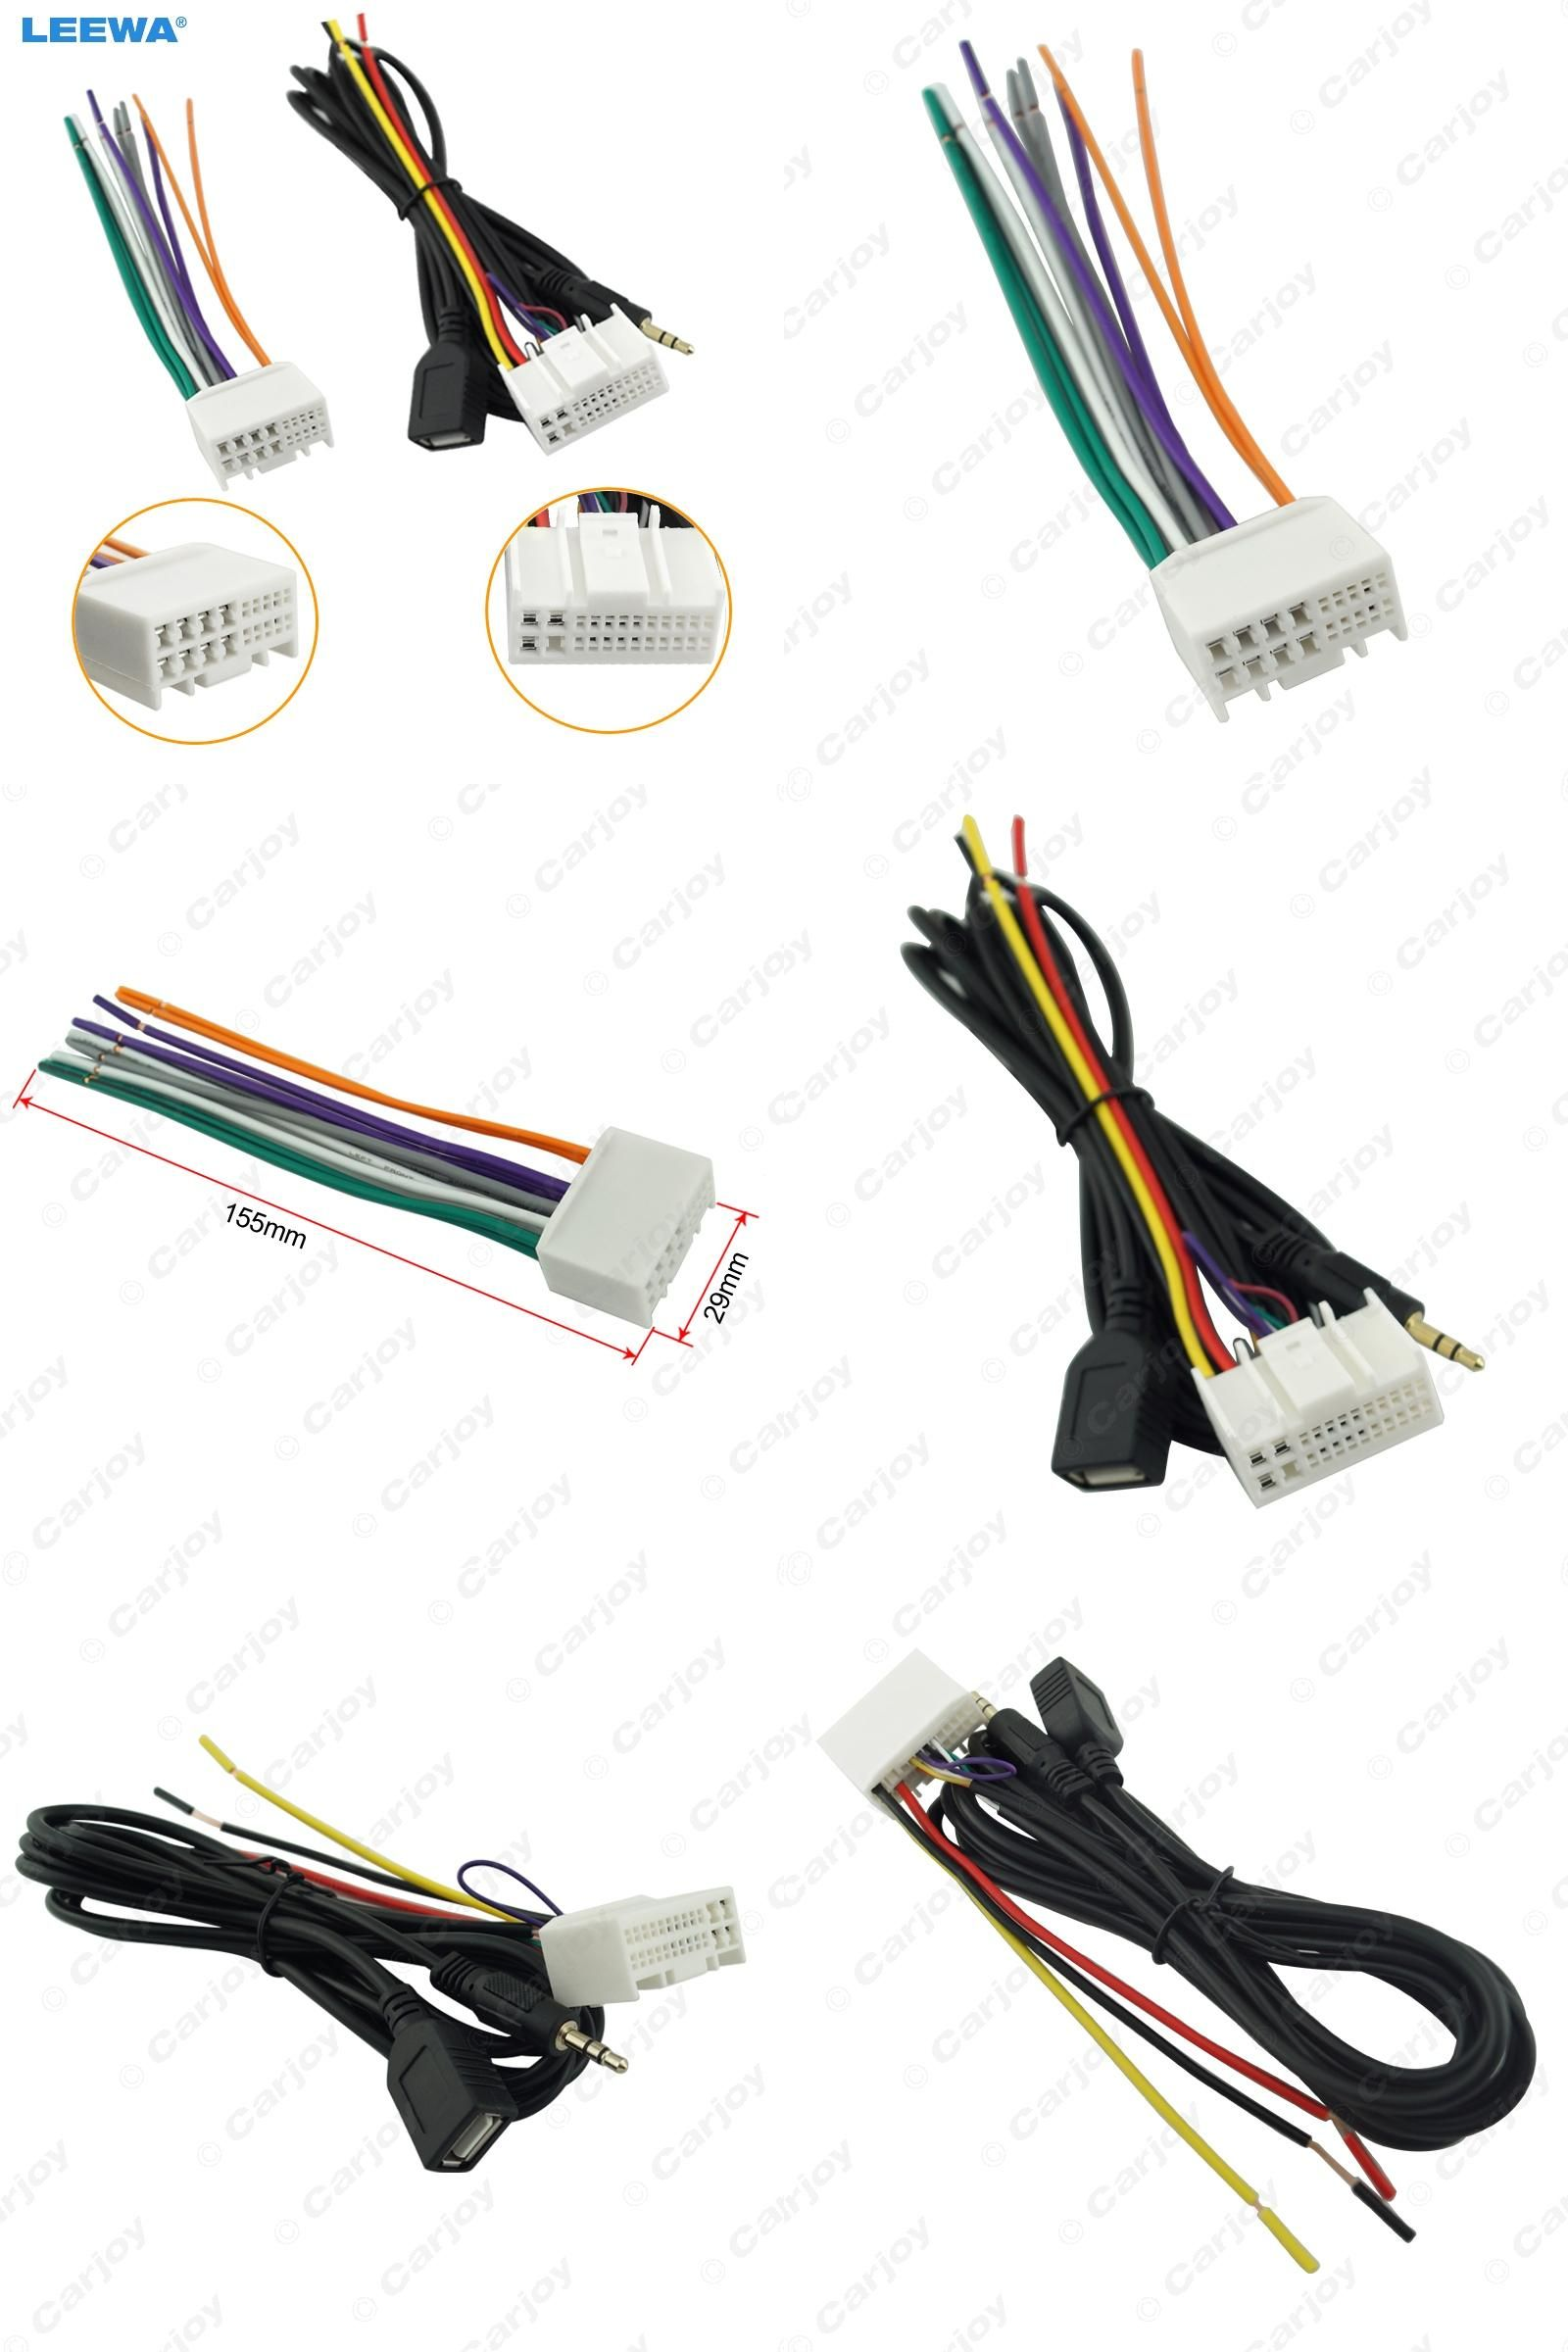 65bba15fb3a8d9bc4f1b698bf8827601 visit to buy] car audio cd stereo wiring harness adapter with usb where to buy a trailer wiring harness at n-0.co